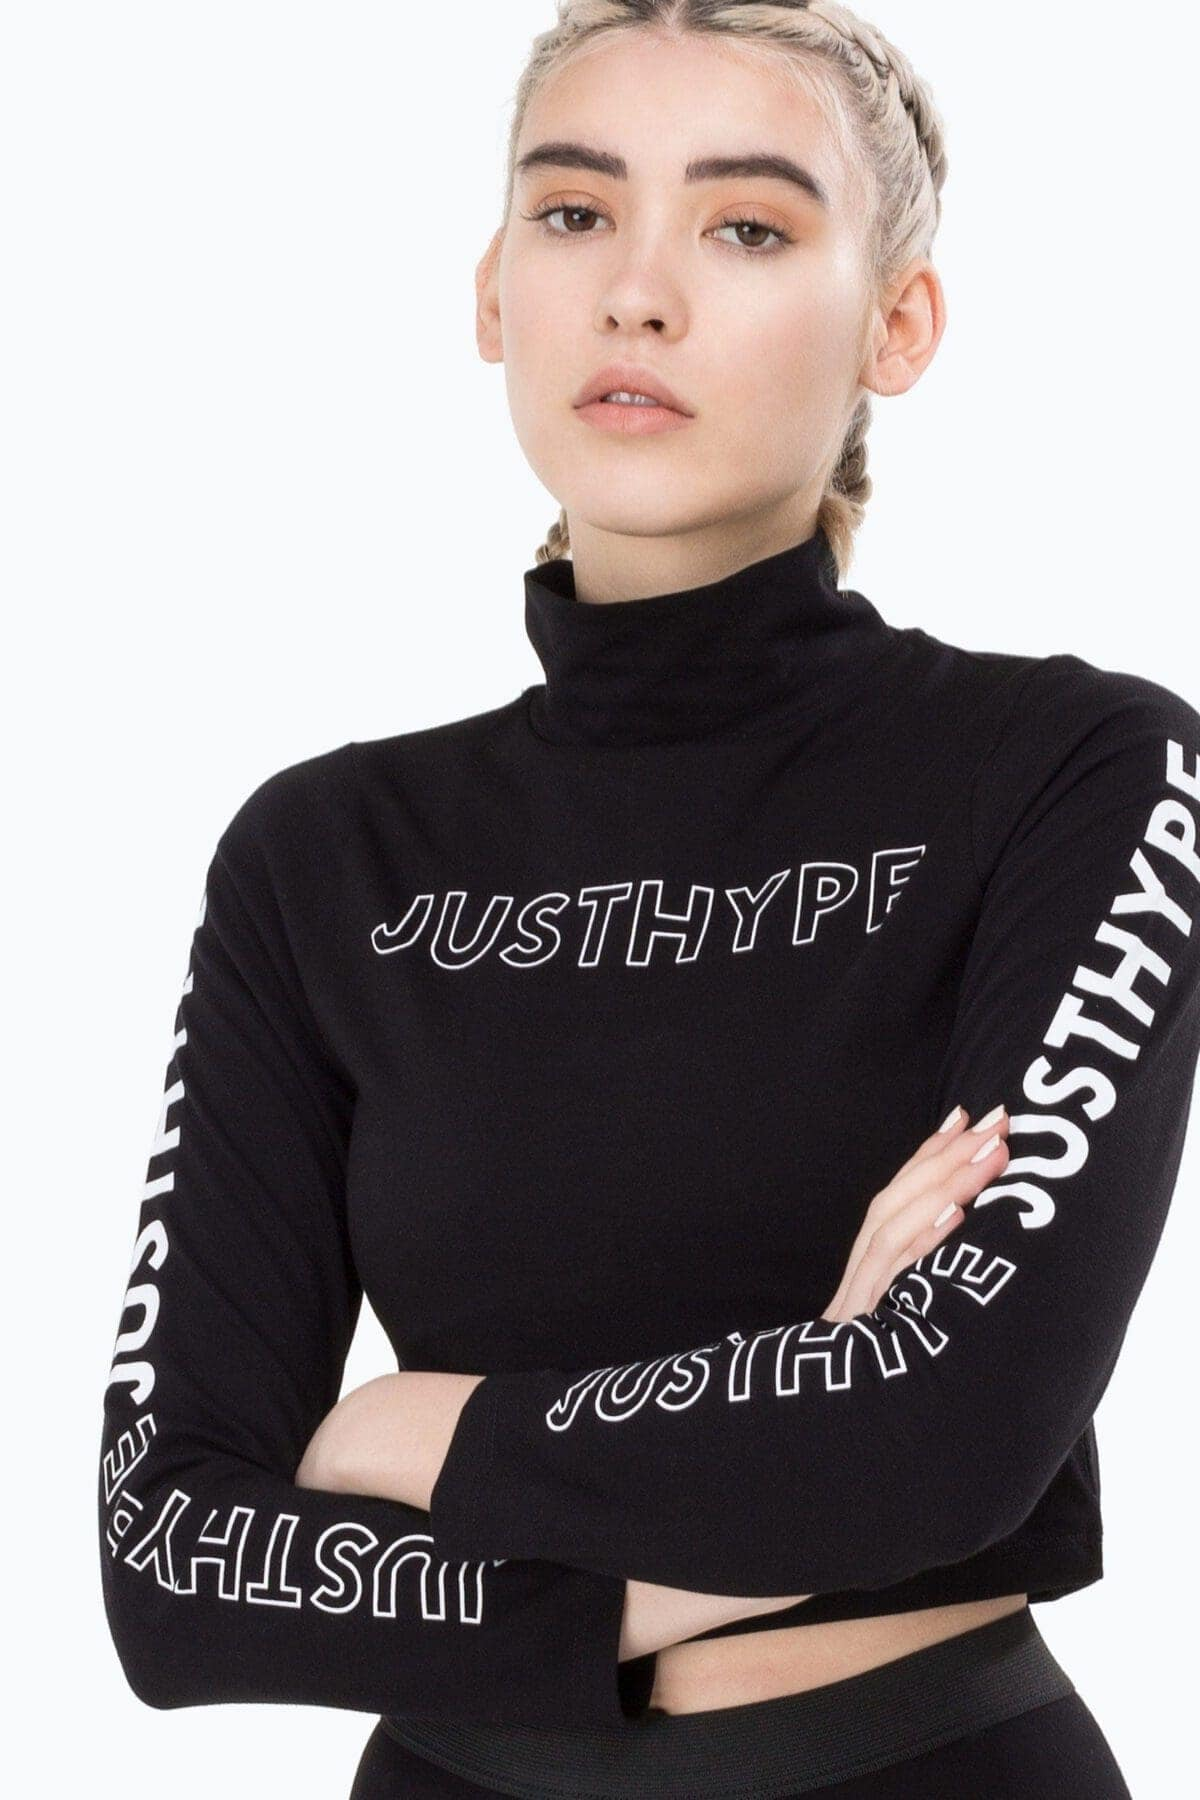 products-hype-blackwhite-high-neck-womens-ls-crop-top-hype-4-1200×1800